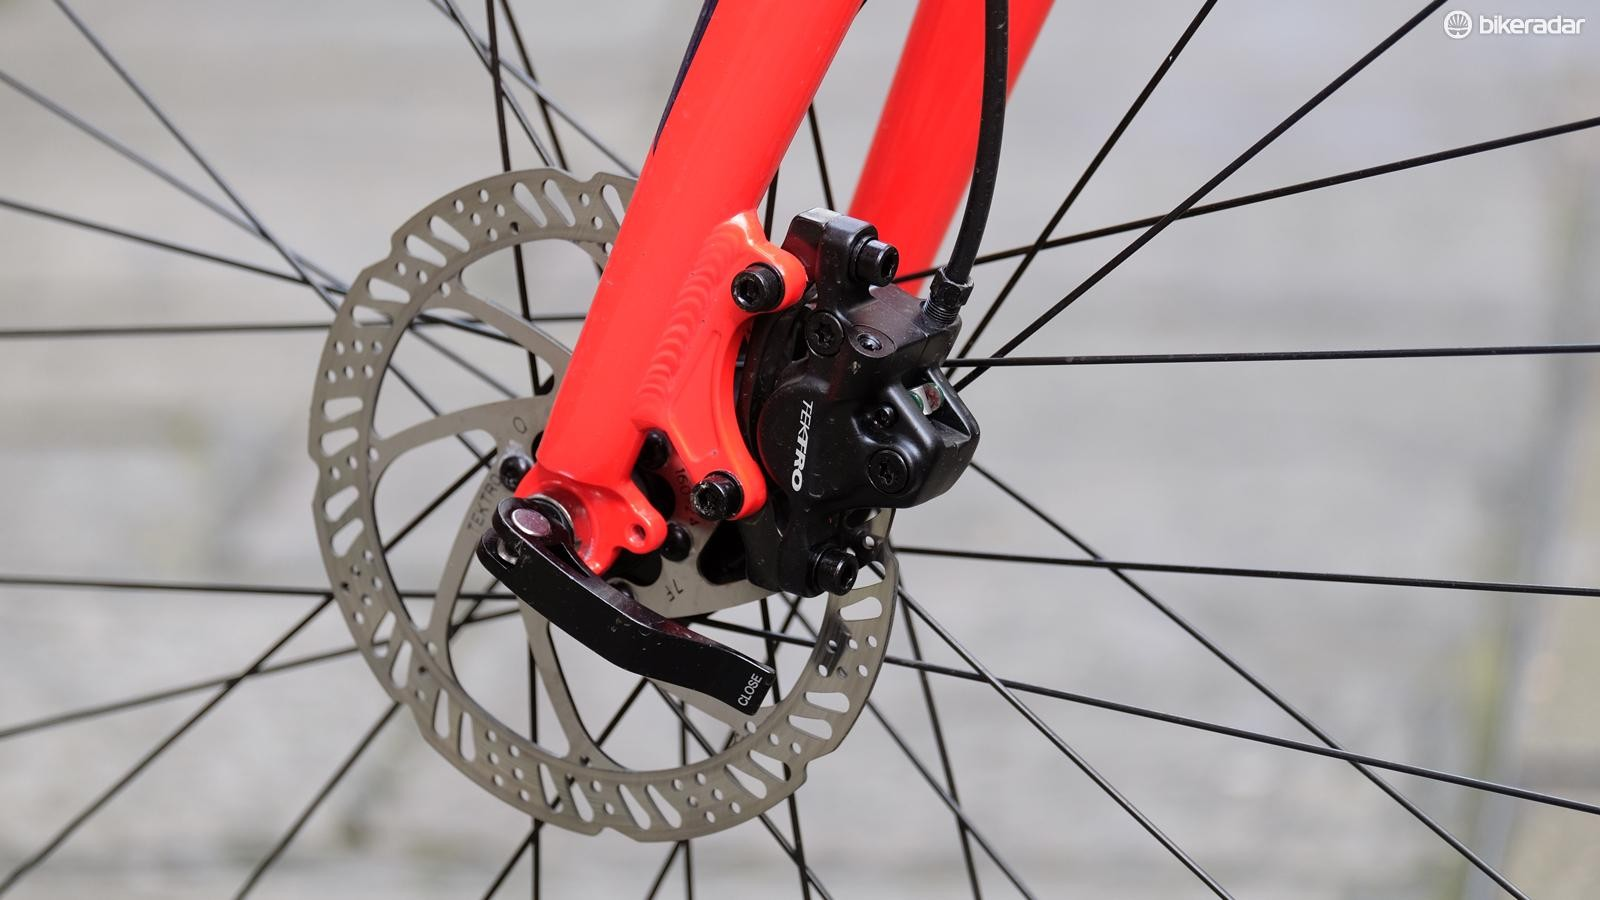 Tektro hydraulic disc brakes offer ample stopping power